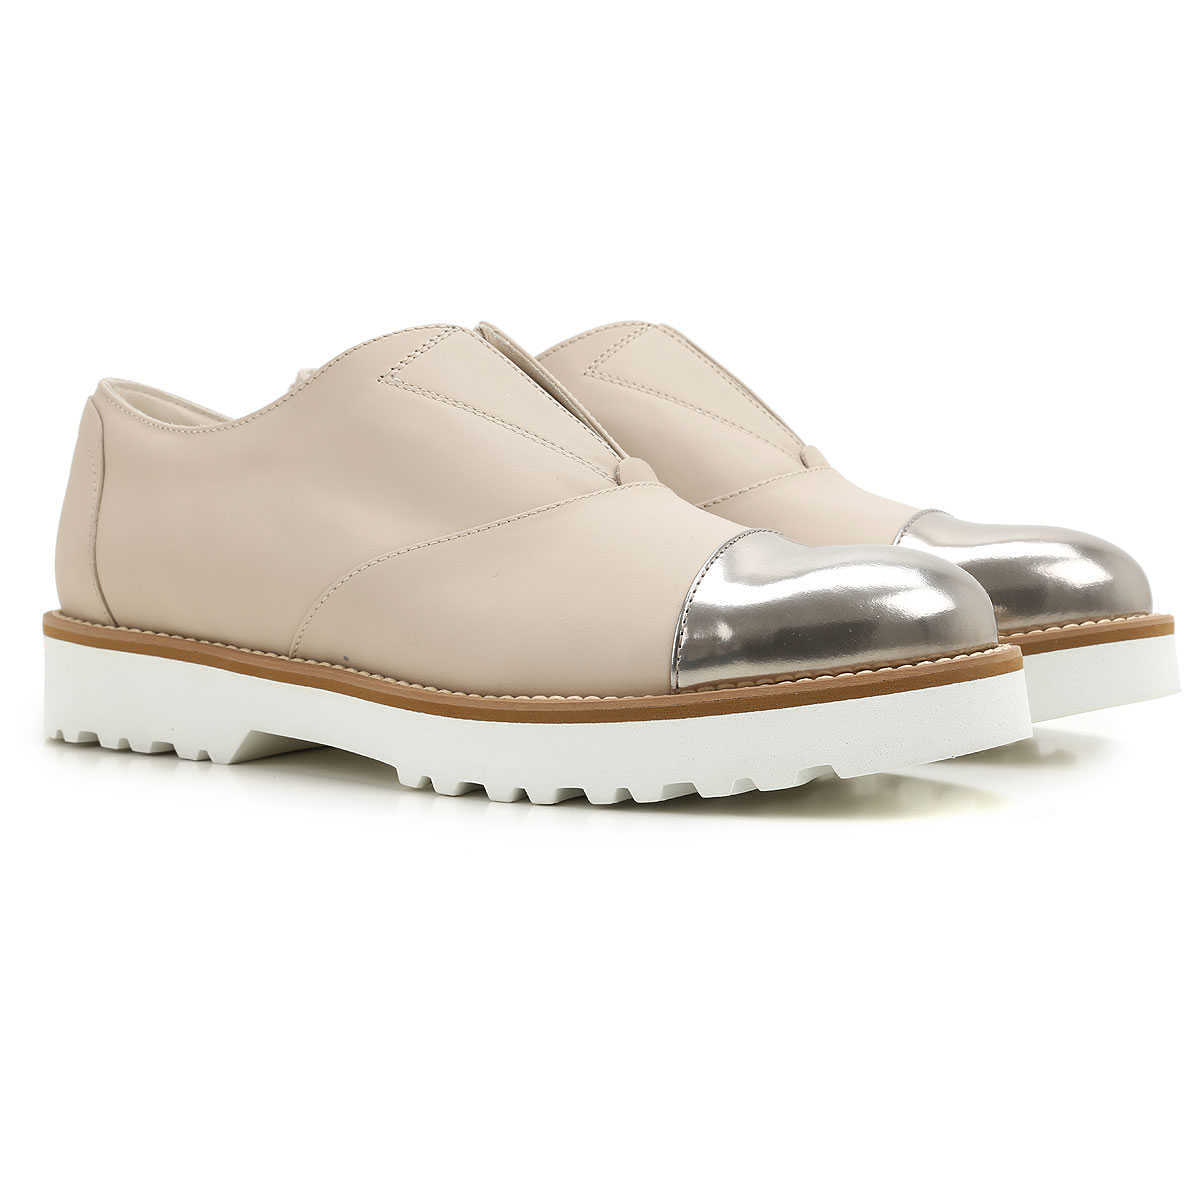 Hogan Loafers for Women On Sale in Outlet Beige - GOOFASH